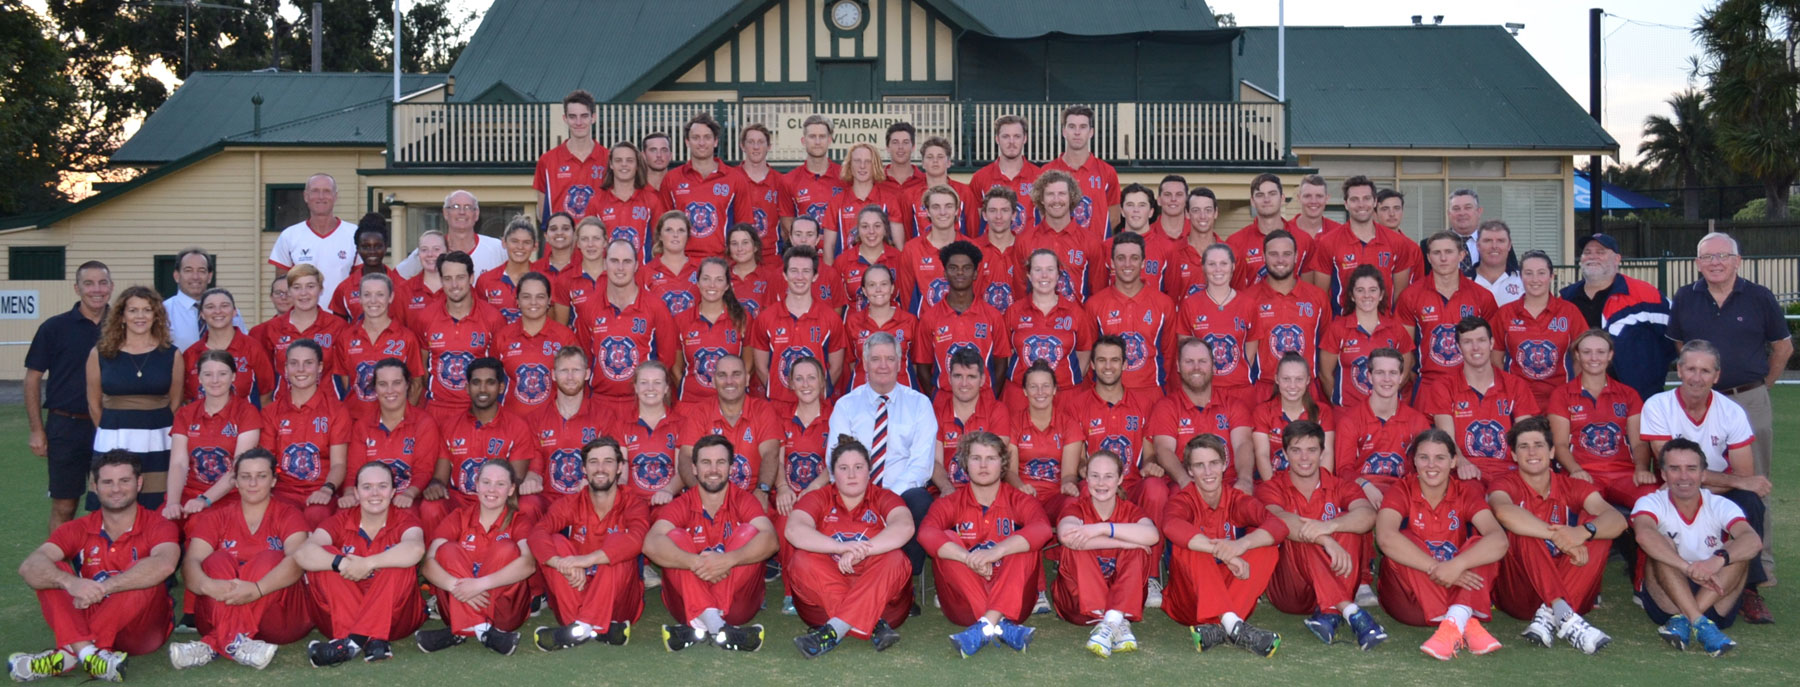 The 2016/17 MCC Cricket men's and women's squads